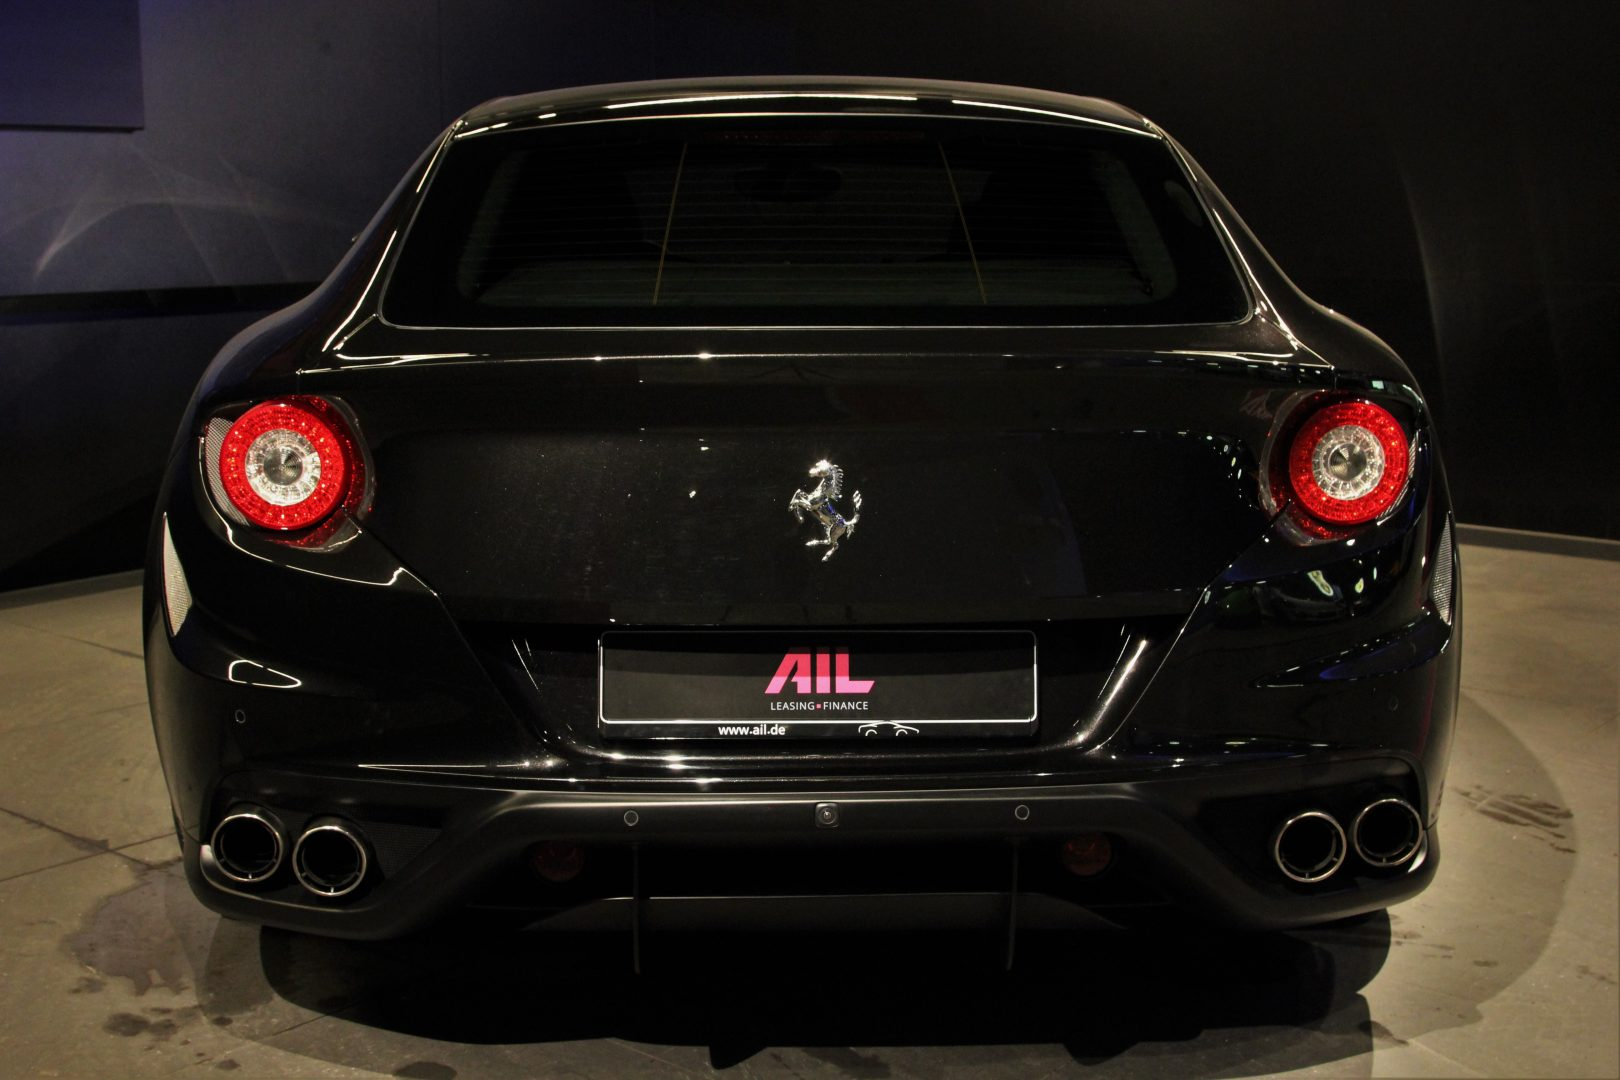 AIL Ferrari FF V12 Carbon Ceramic Brake 4